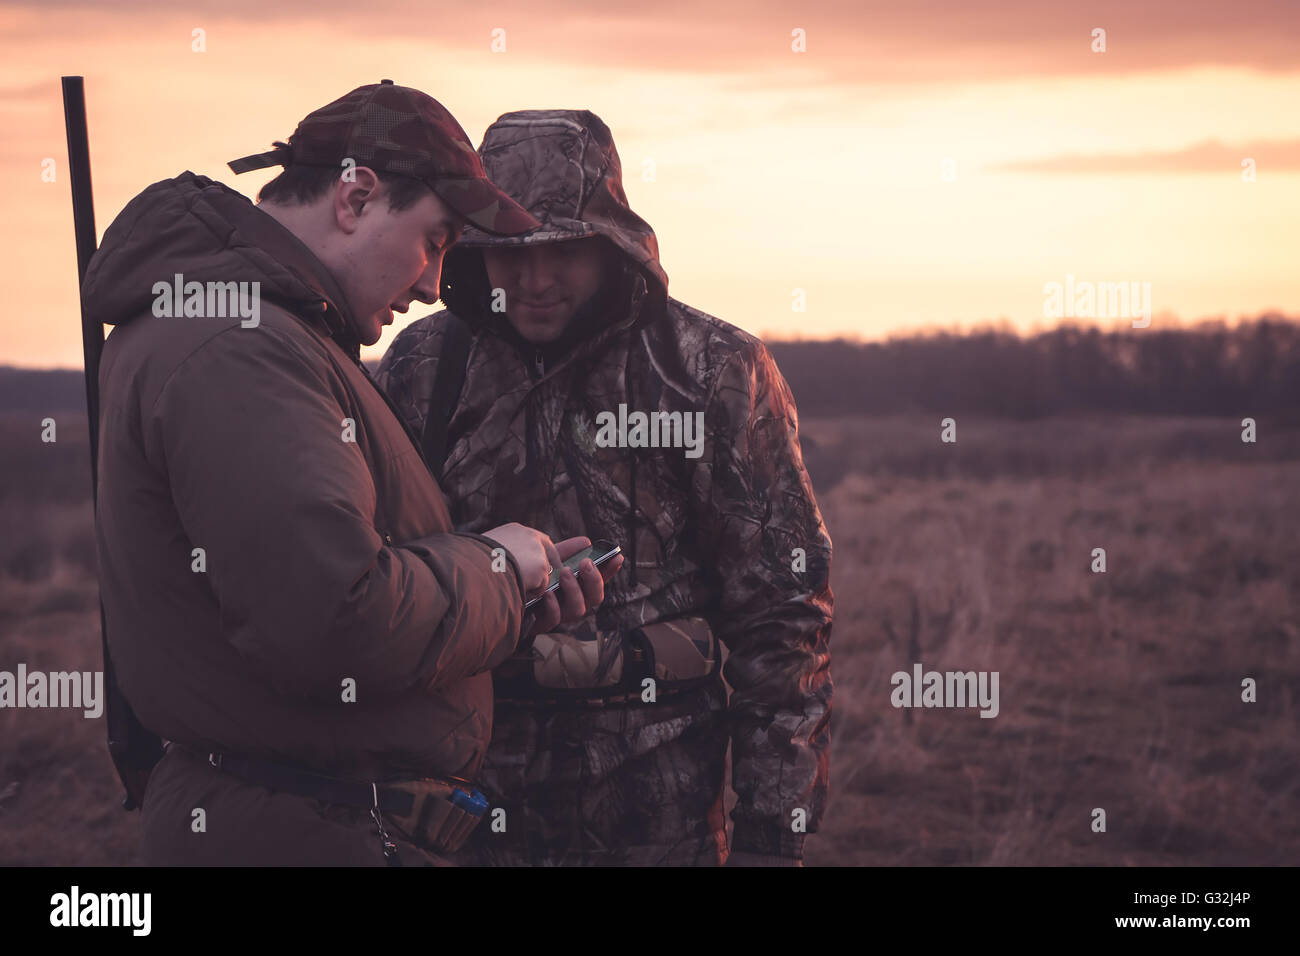 Hunters spot their position via mobile phone  in rural field during hunting season - Stock Image